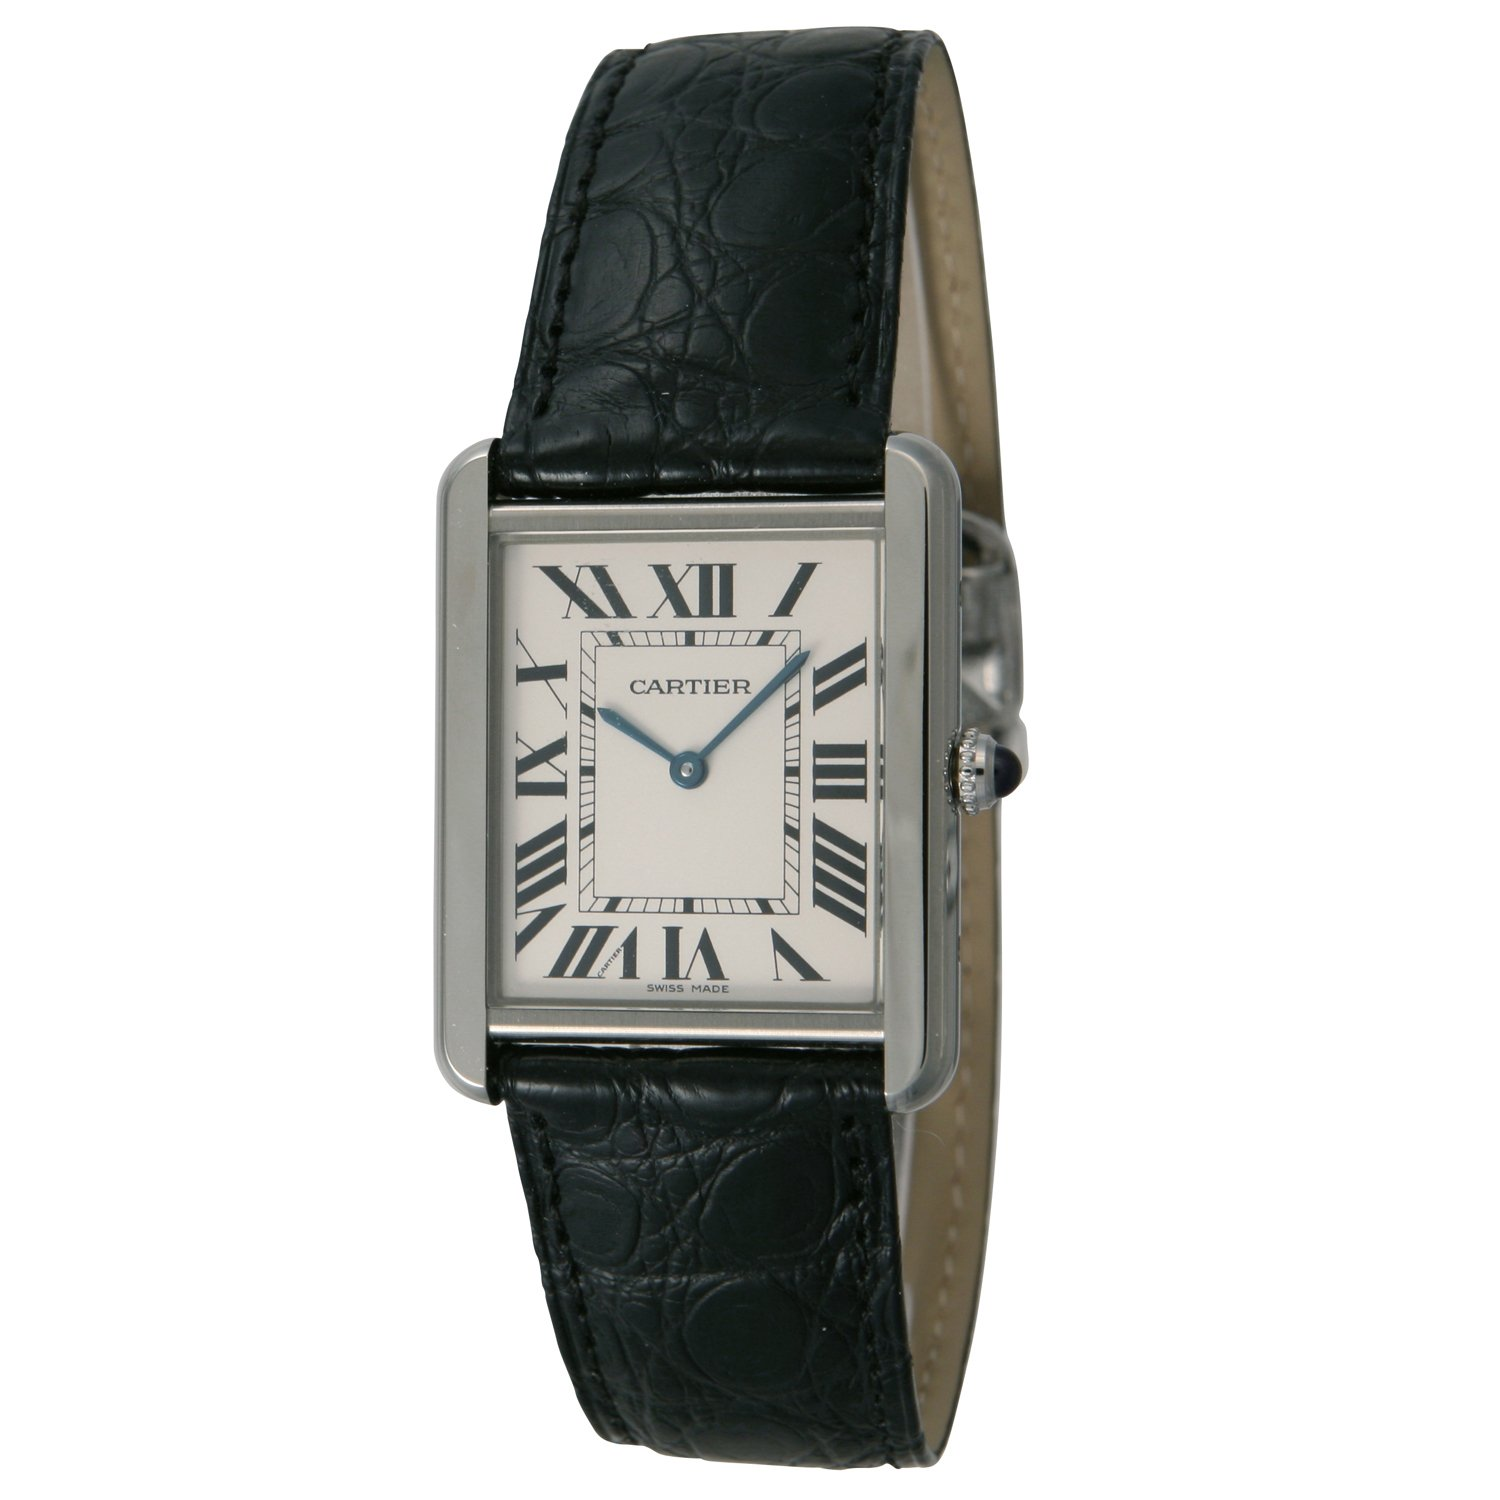 Cartier B00385XAHY B00385XAHY To US $2299, UK £2249 Cartier Men's Tank Solo Black Leather Band Steel Case Quartz Silver-Tone Dial Analog Watch W5200003